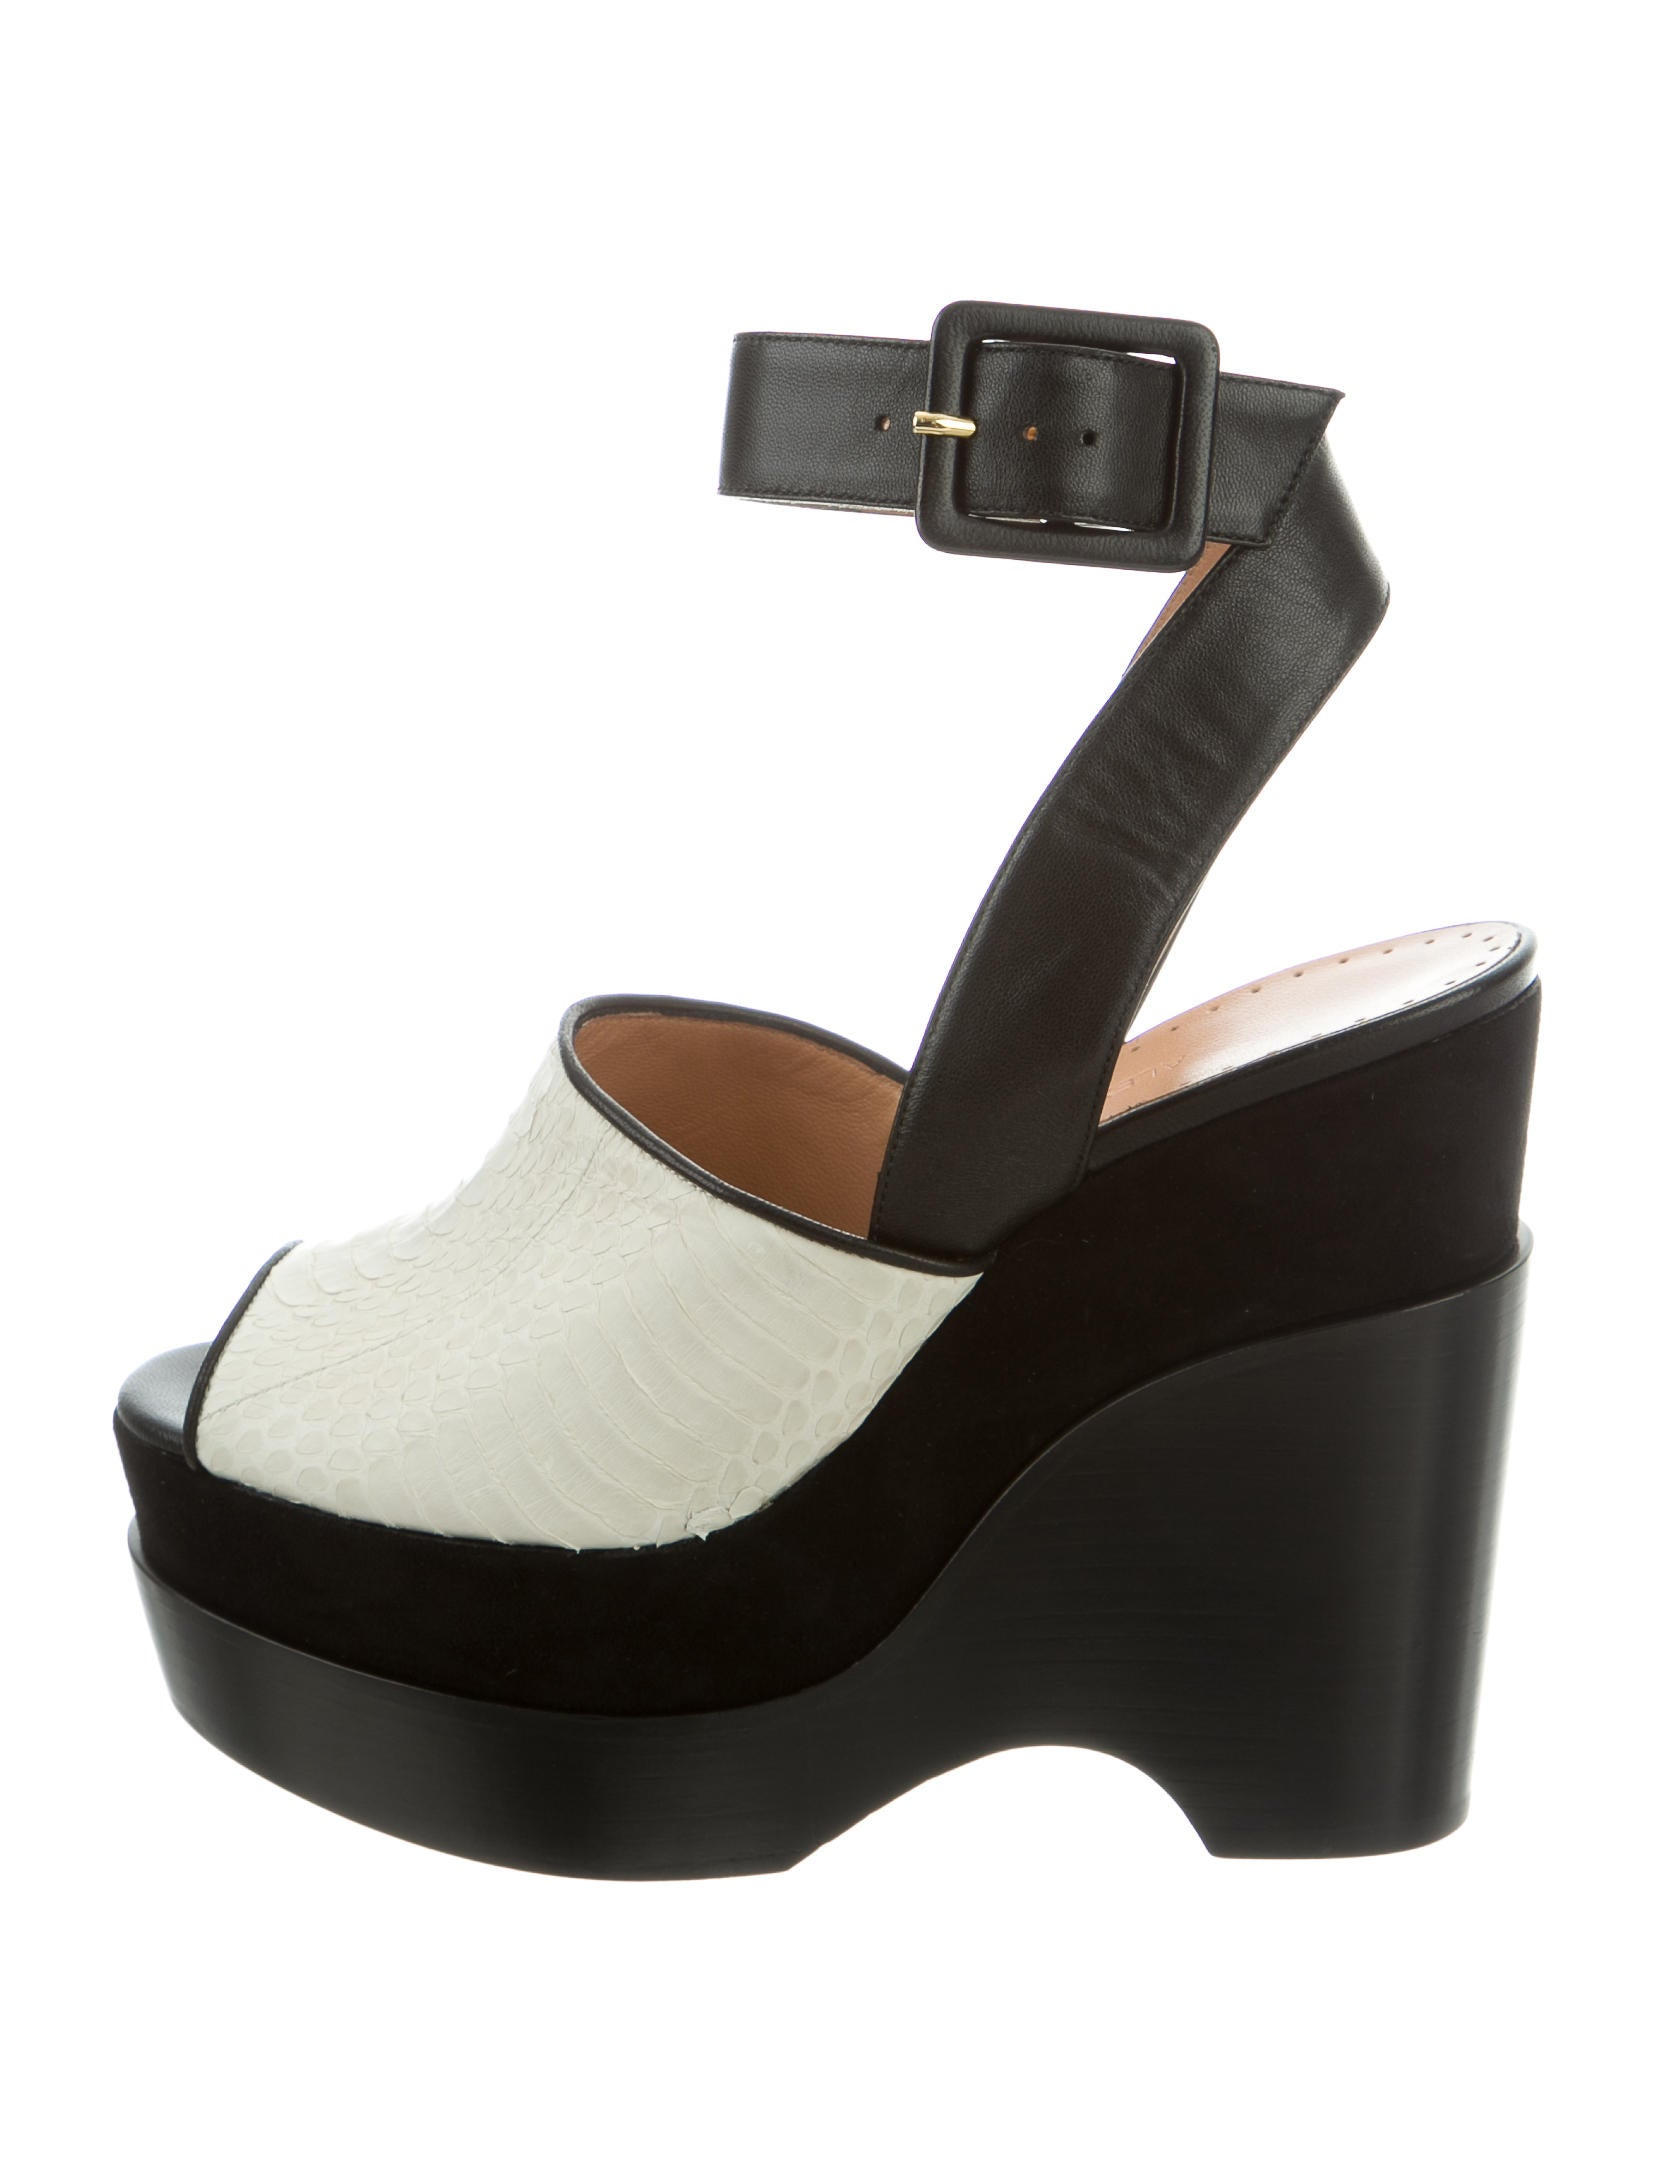 Alexa Wagner Rapunzel Platform Sandals w/ Tags sale lowest price free shipping great deals nvTk9